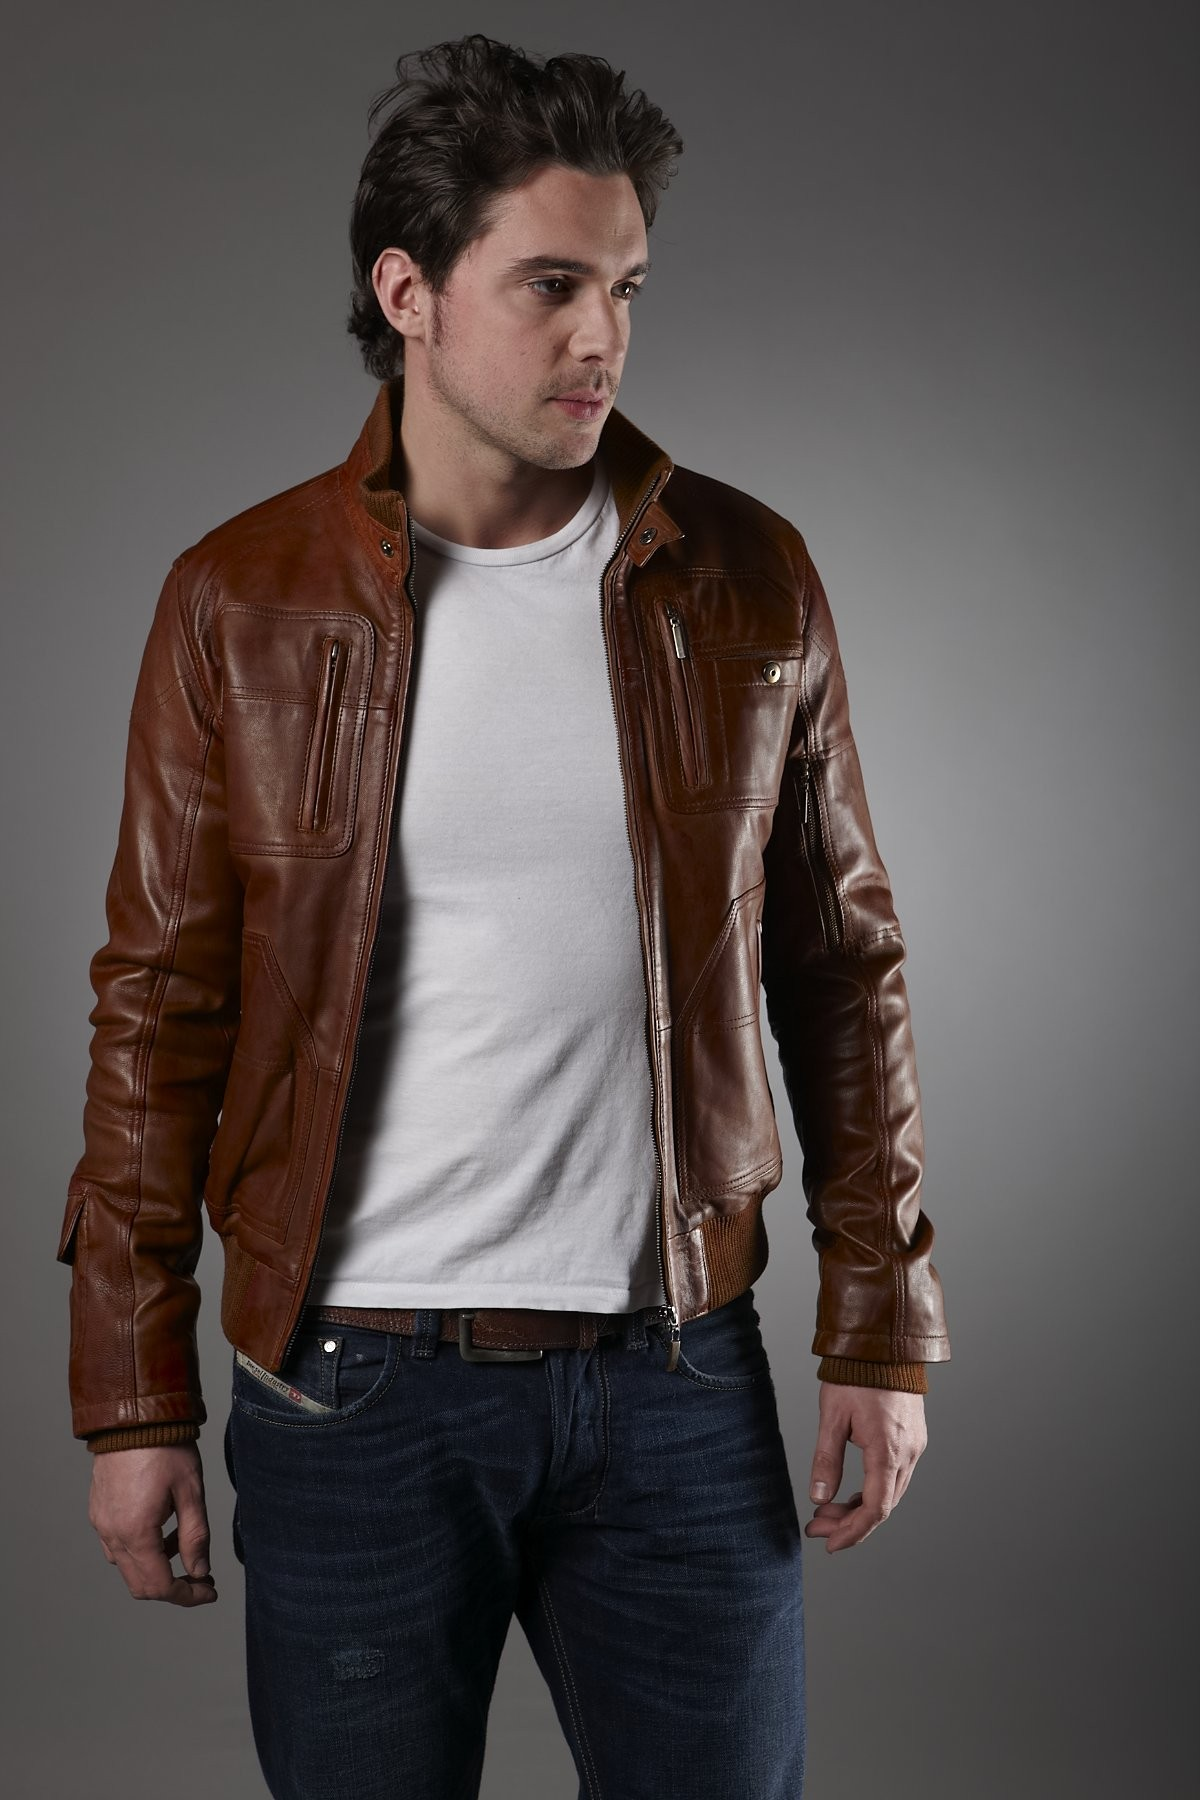 Leather Jackets For Men Span Genres